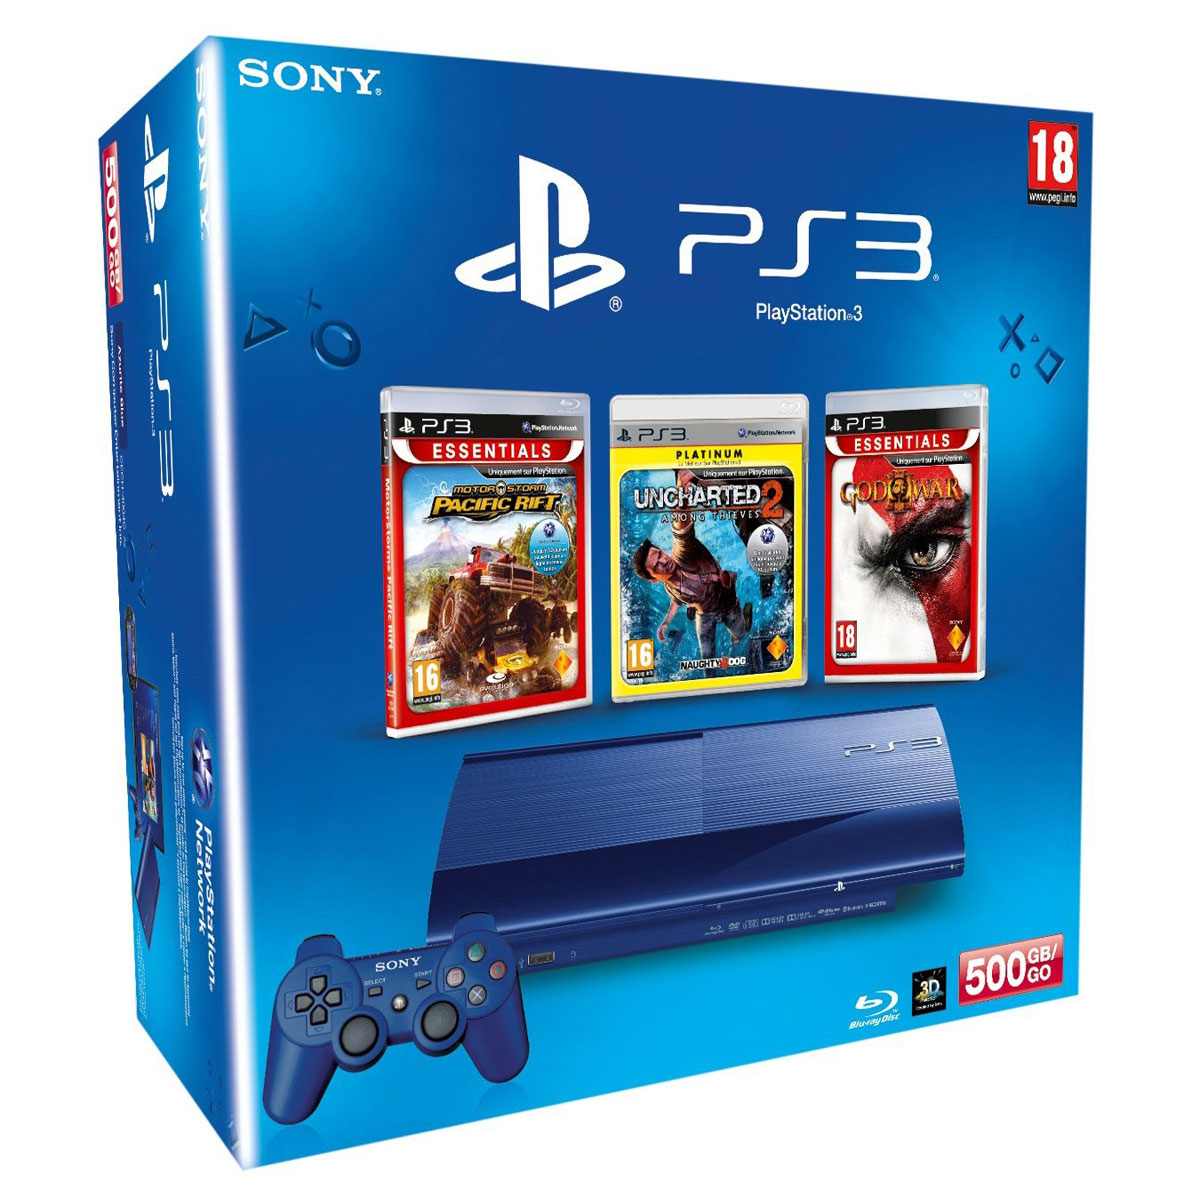 LDLC.com Sony Playstation 3 Ultra Slim Bleue 500 Go Motor Storm : Pacific Rift + Uncharted 2 : Among Thieves + God of War 3 Console Playstation 3 Ultra Slim Bleue 500 Go + trois jeux